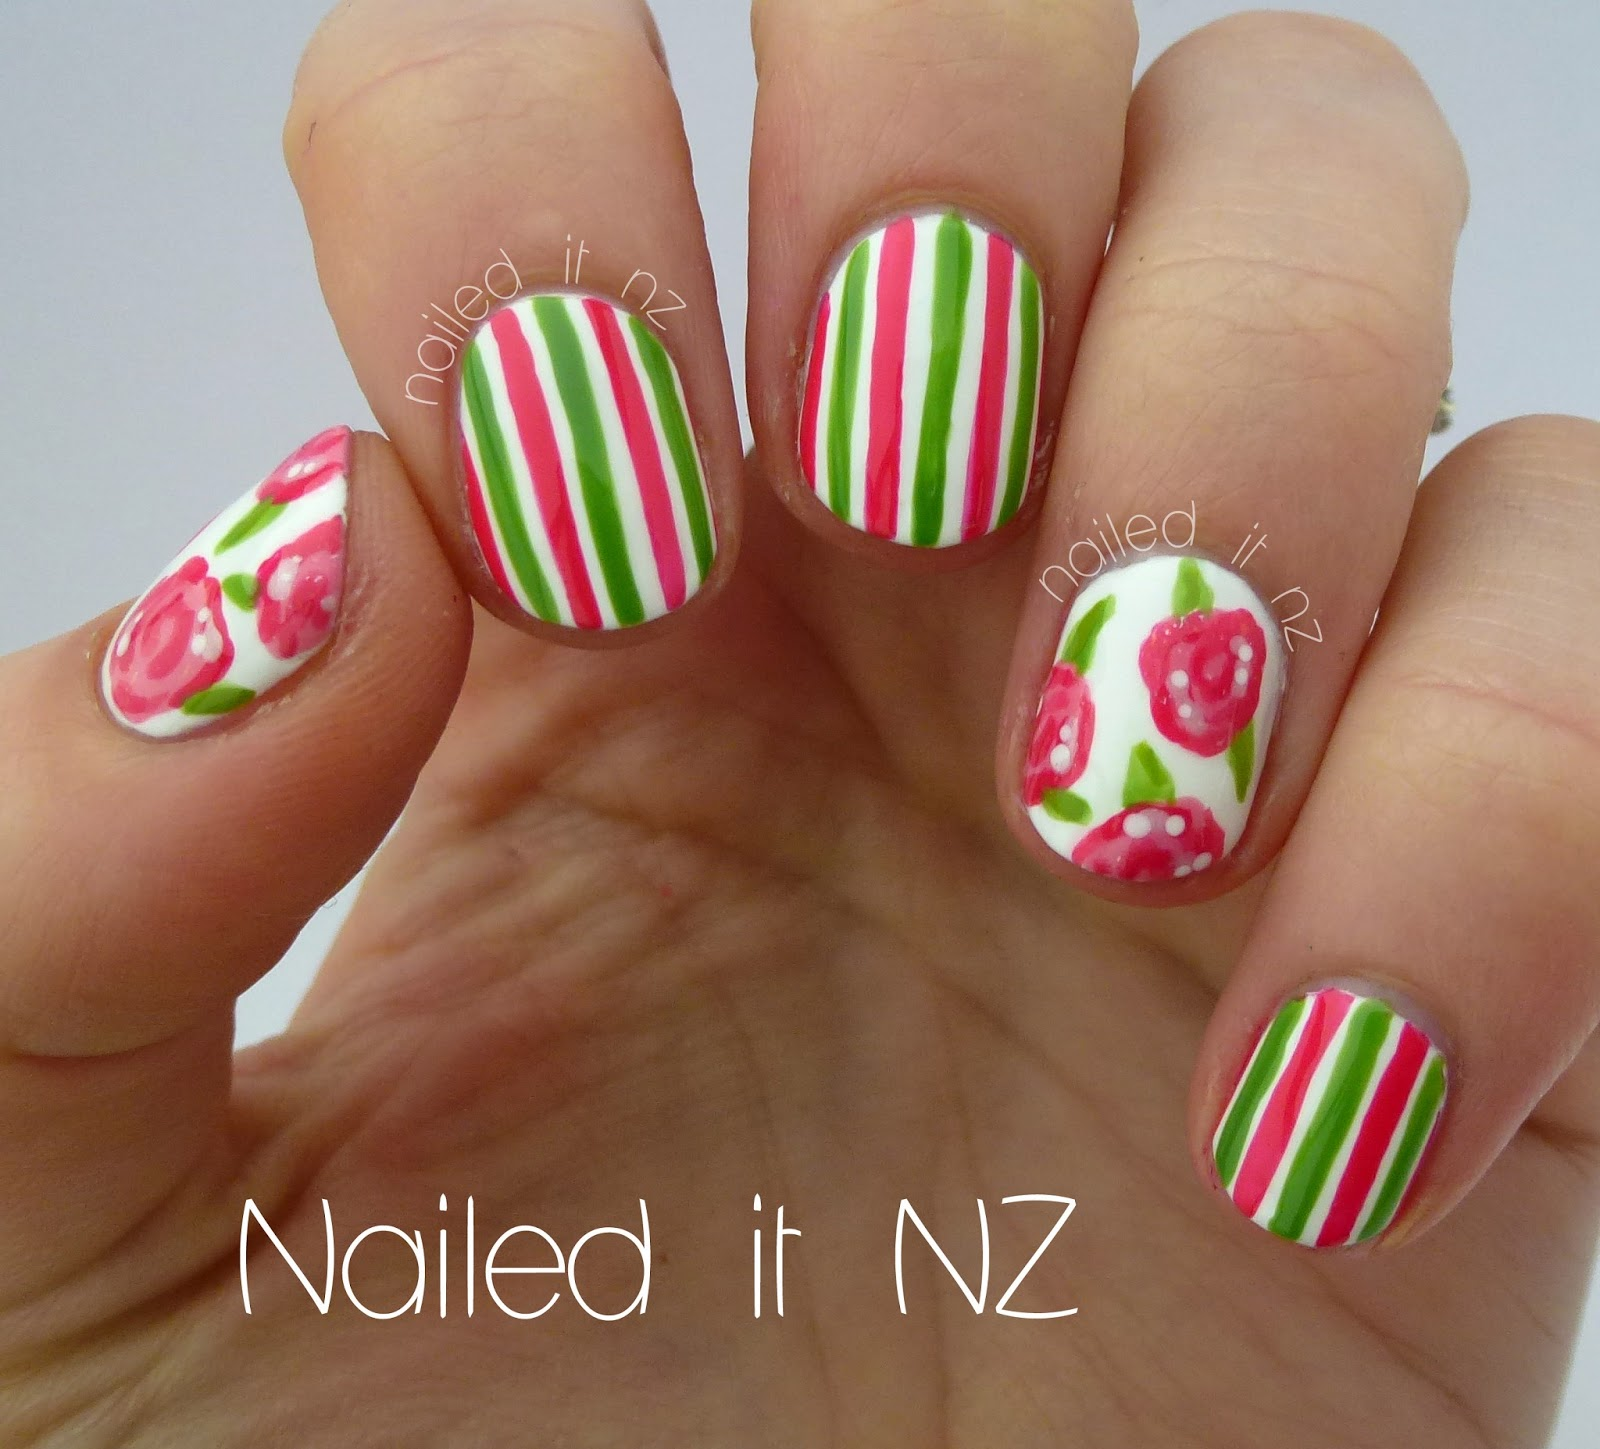 Roses and stripes nail art - on YouTube!